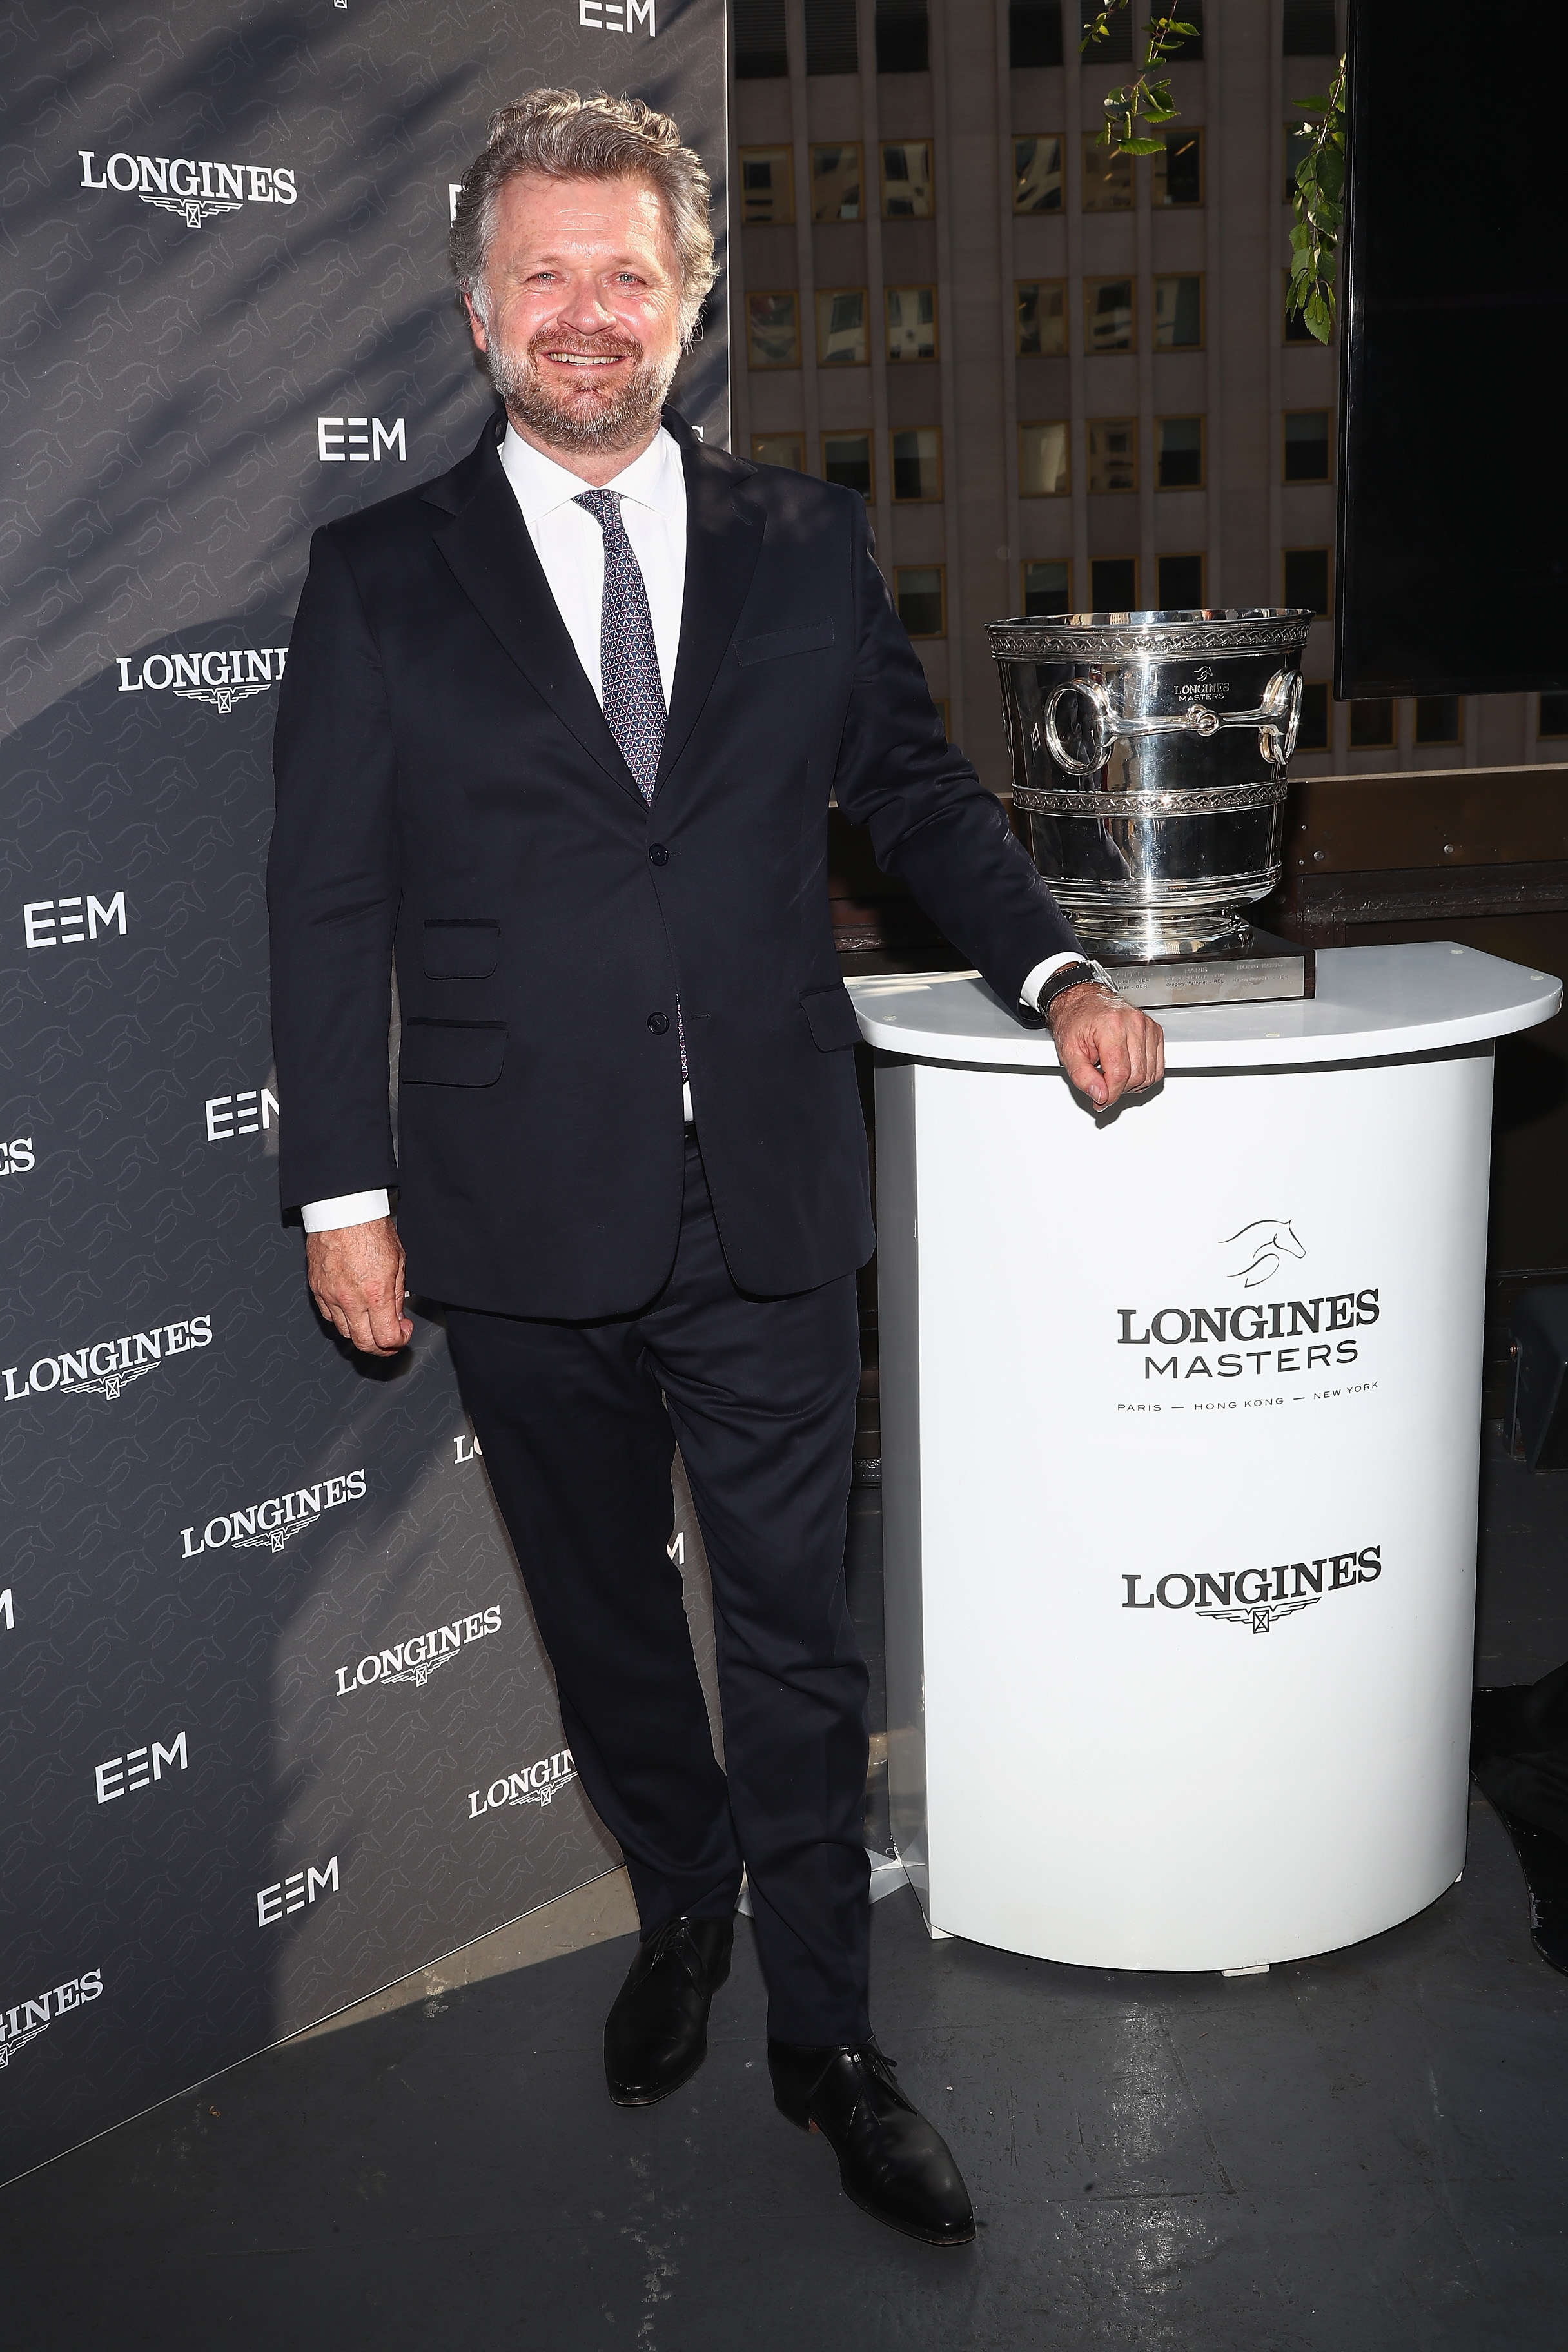 NEW YORK, NY - MAY 17: Christophe Ameeuw, Founder and CEO of EEM, creators of the Longines Masters Series attends the Longines Masters launch party celebrating Series' epic move to New York at Salon de Ning on May 17, 2017 in New York City. (Photo by Astrid Stawiarz/Getty Images for Longines)